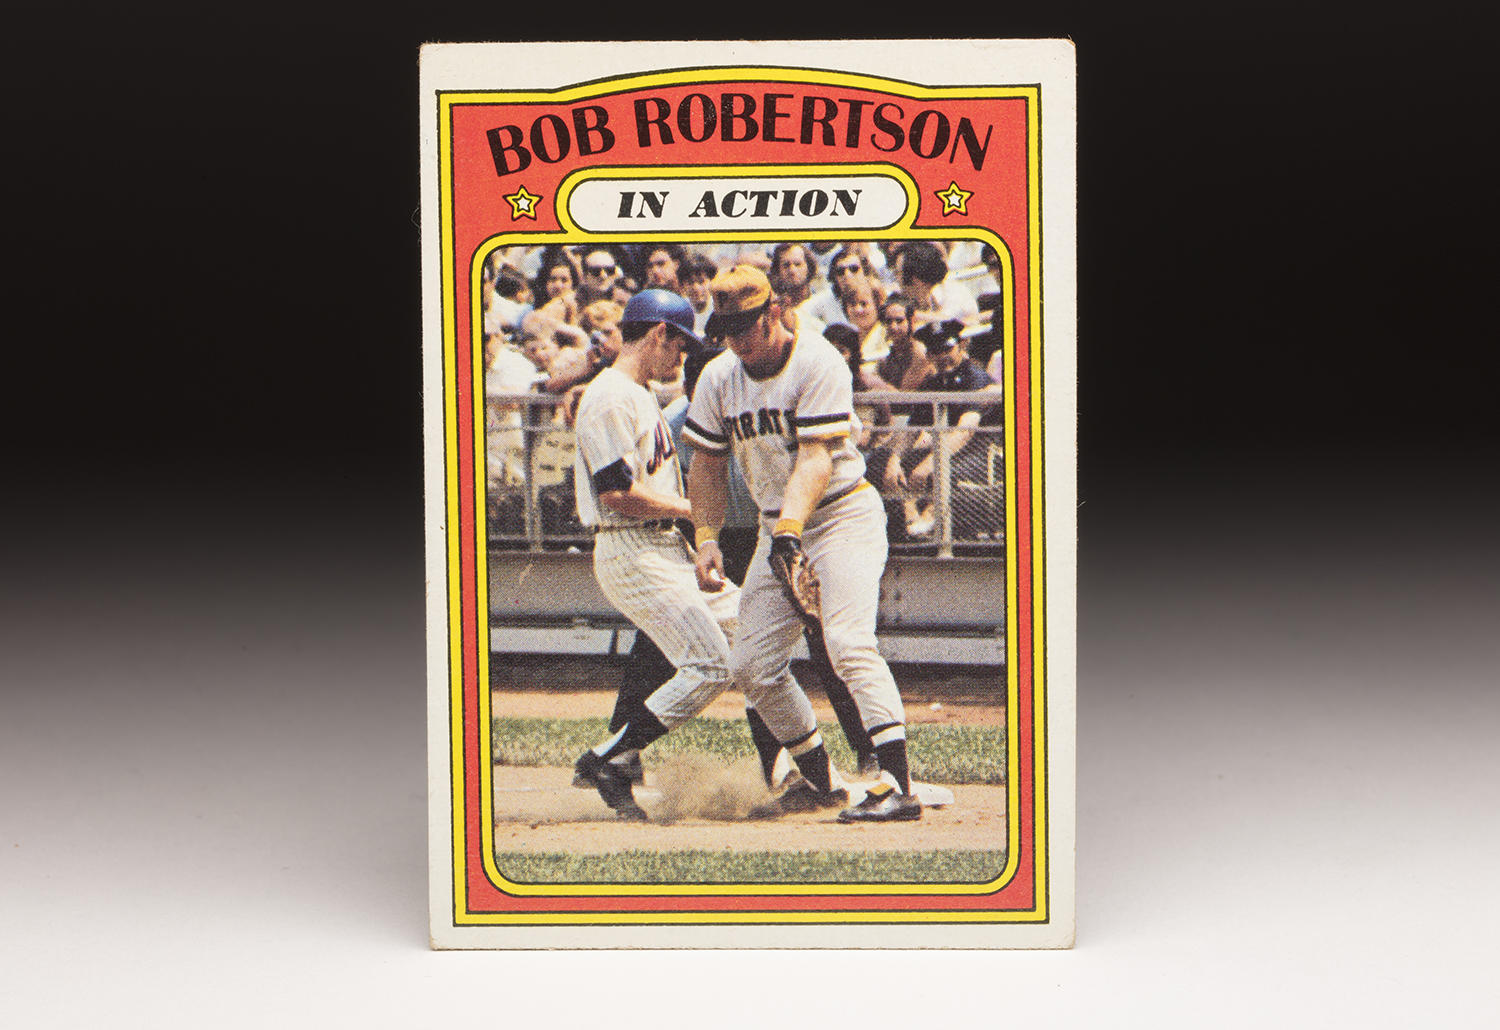 """A look at Bob Robertson's 1972 Topps """"In Action"""" card reinforces the notion that he had substantial power. (By Photographer Milo Stewart Jr./National Baseball Hall of Fame and Museum)"""